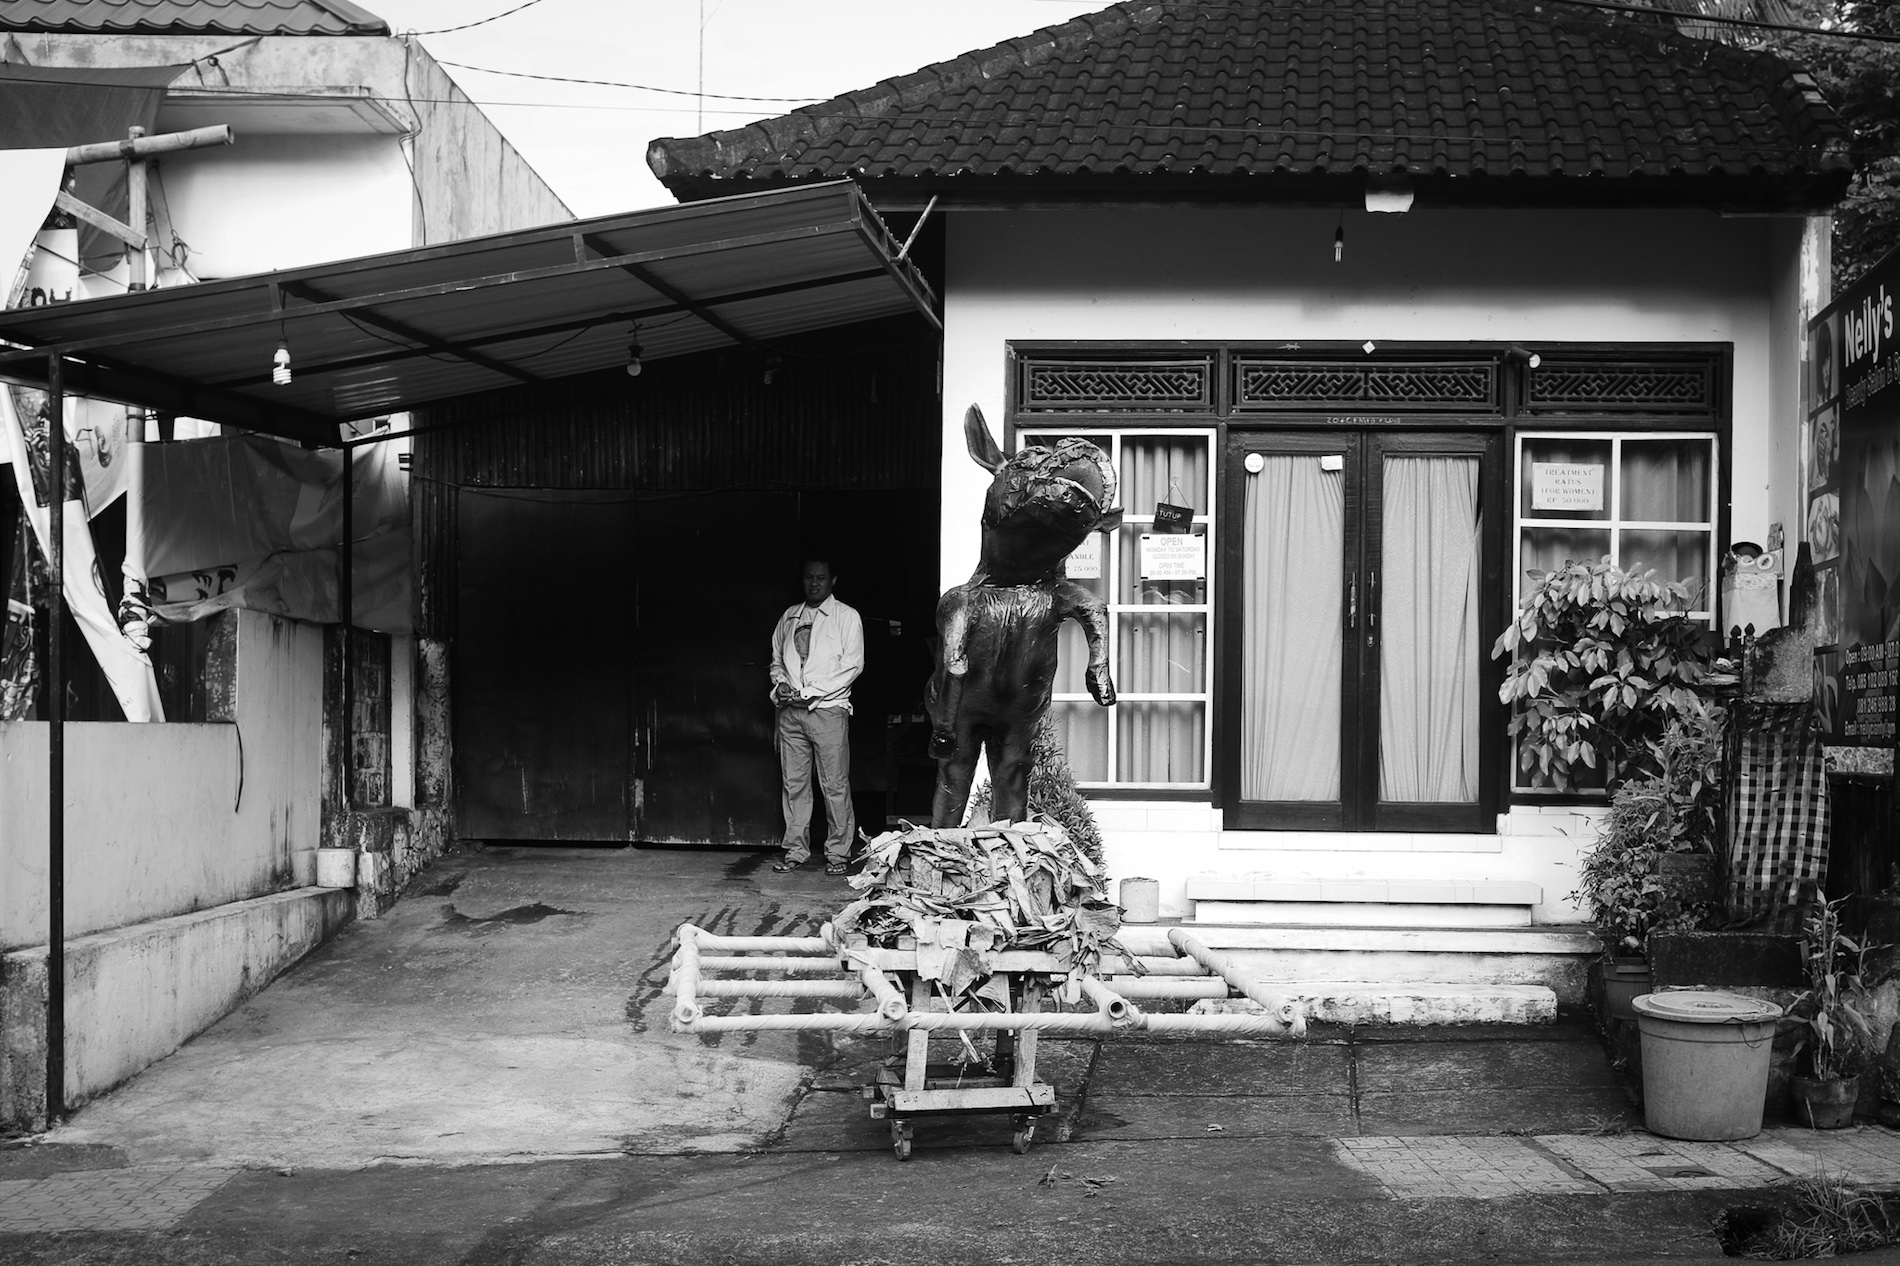 Baby Ogoh-ogoh in the Making - Bali Street Photographer